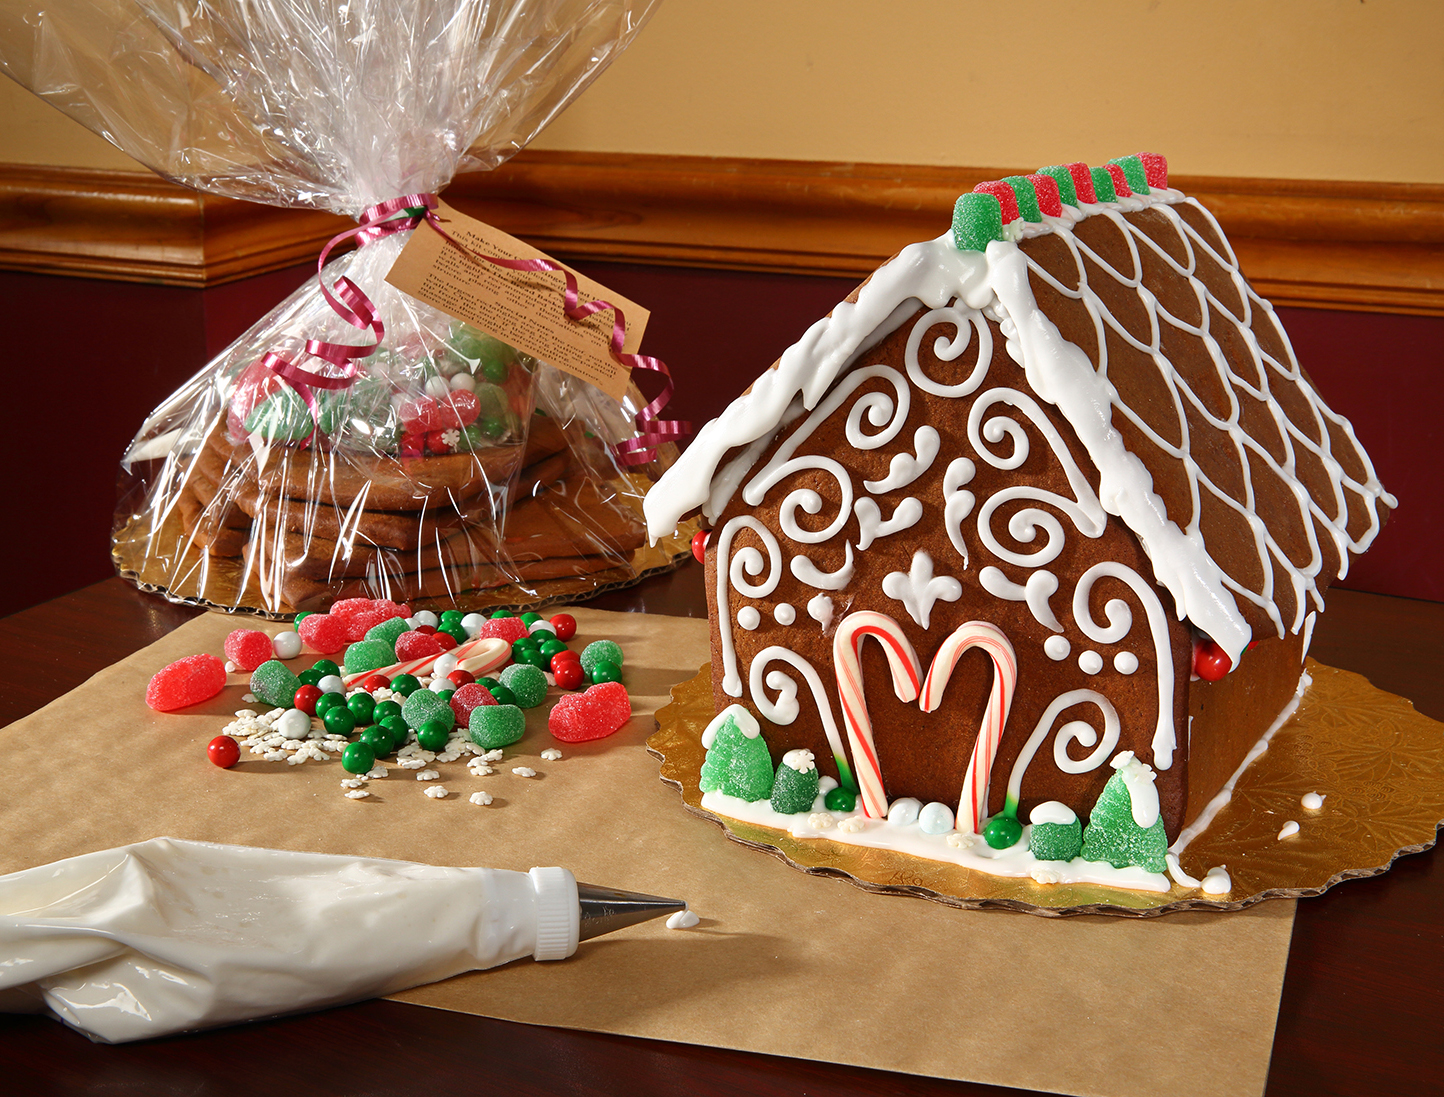 This is a warm photo of gingerbread houses as they are being frosted.